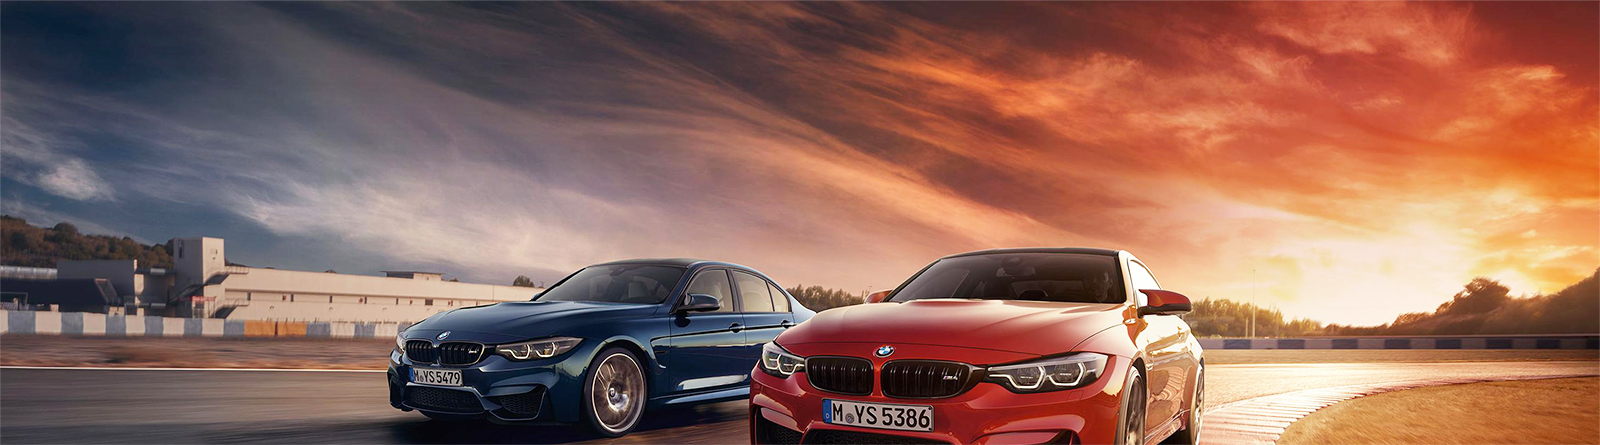 BMW MLeague headerimage